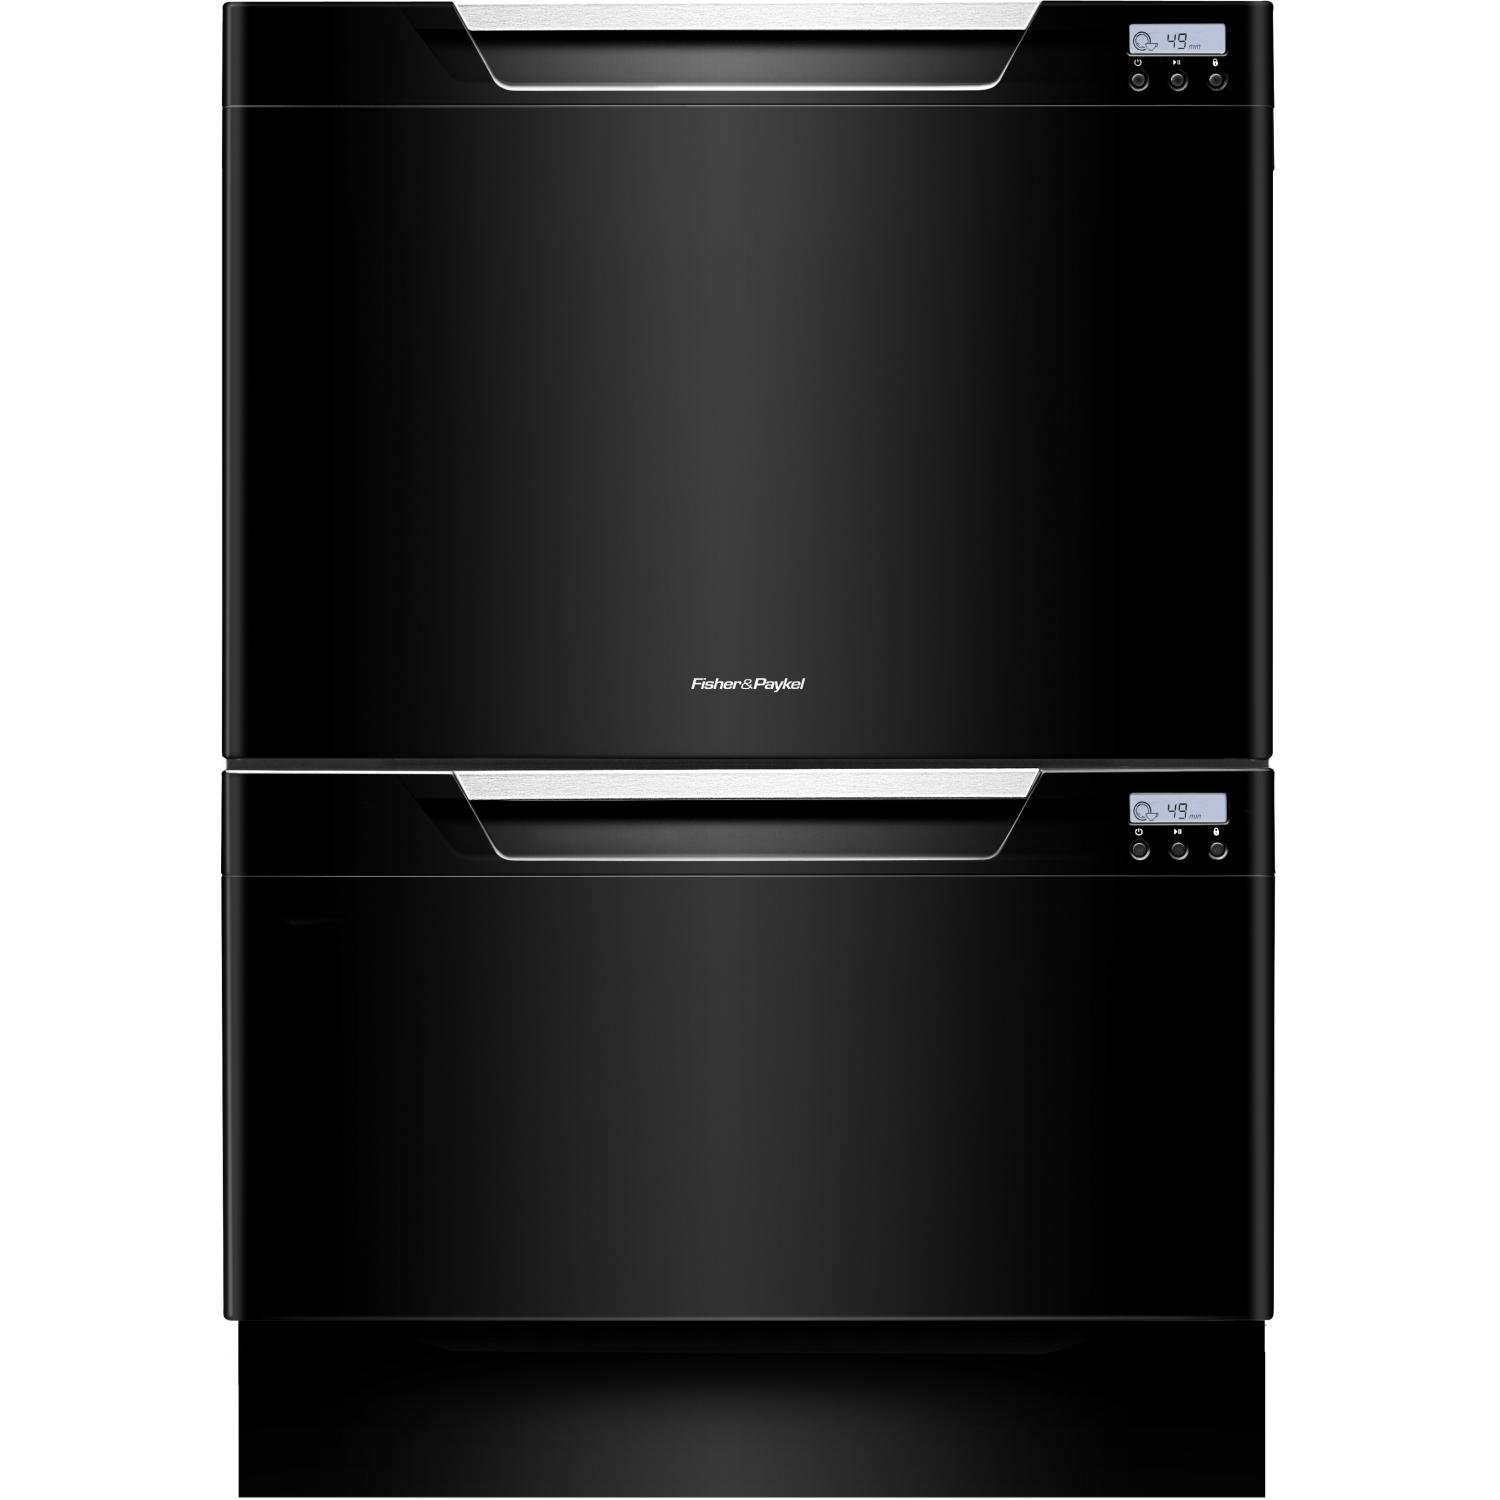 Fisher and paykel 2 drawer dishwasher - Amazon Com Dishdrawer Tall Series Dd24dctb7 24 Quot Semi Integrated Dishwasher With 14 Place Settings 9 Wash Cycles Eco Option Quiet Operation Adjustable